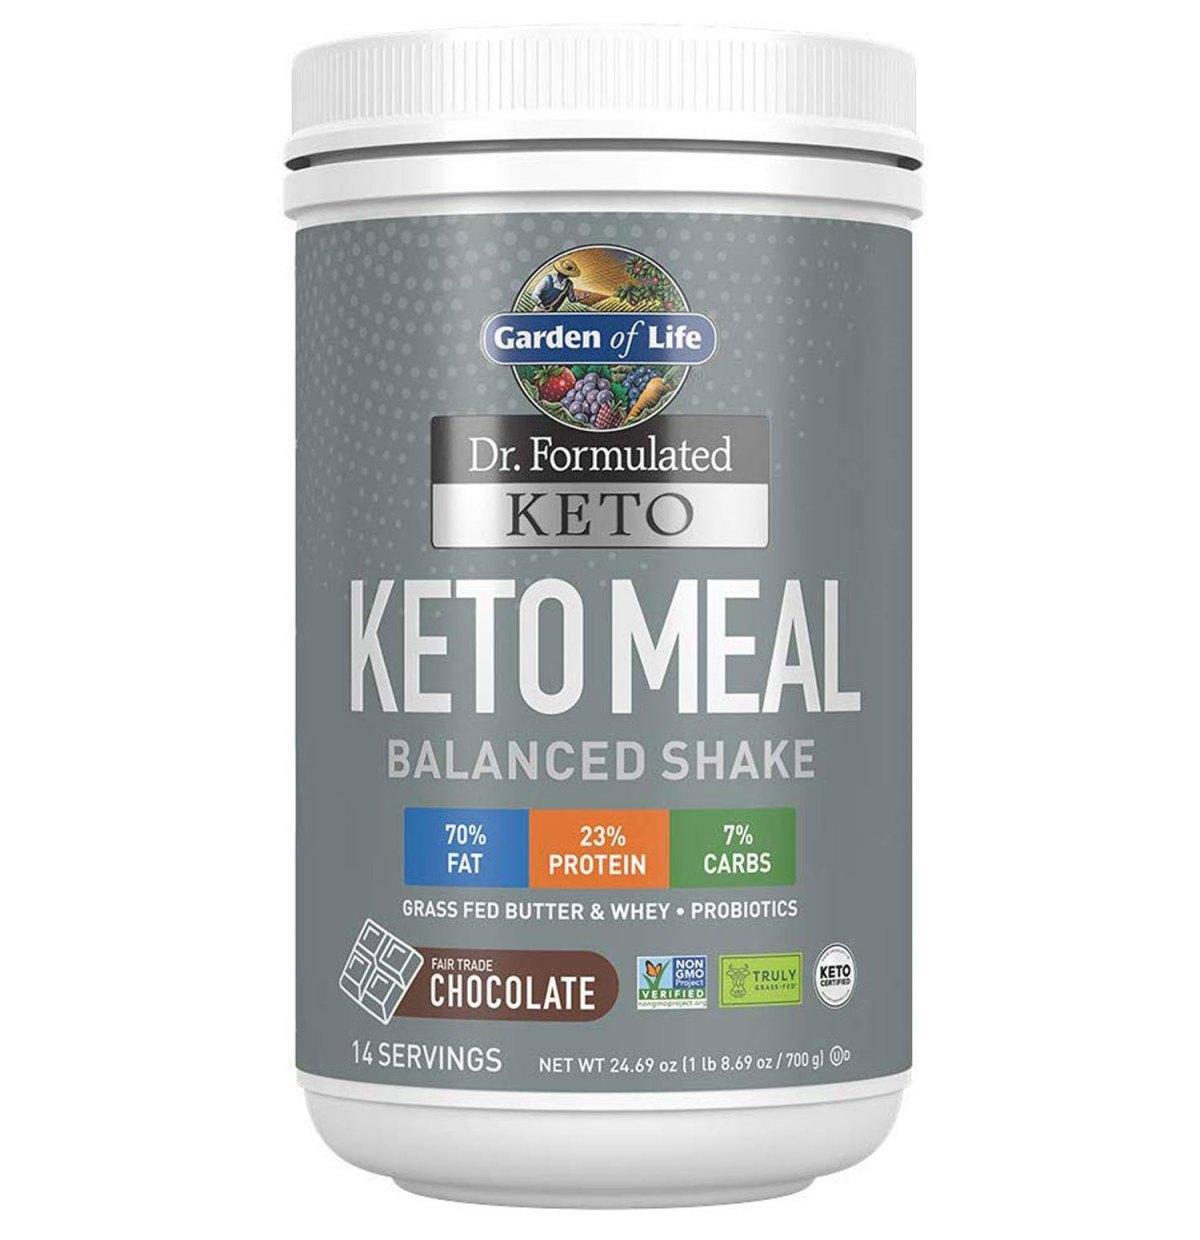 Garden-of-Life-Dr-Formulated-Keto-Meal